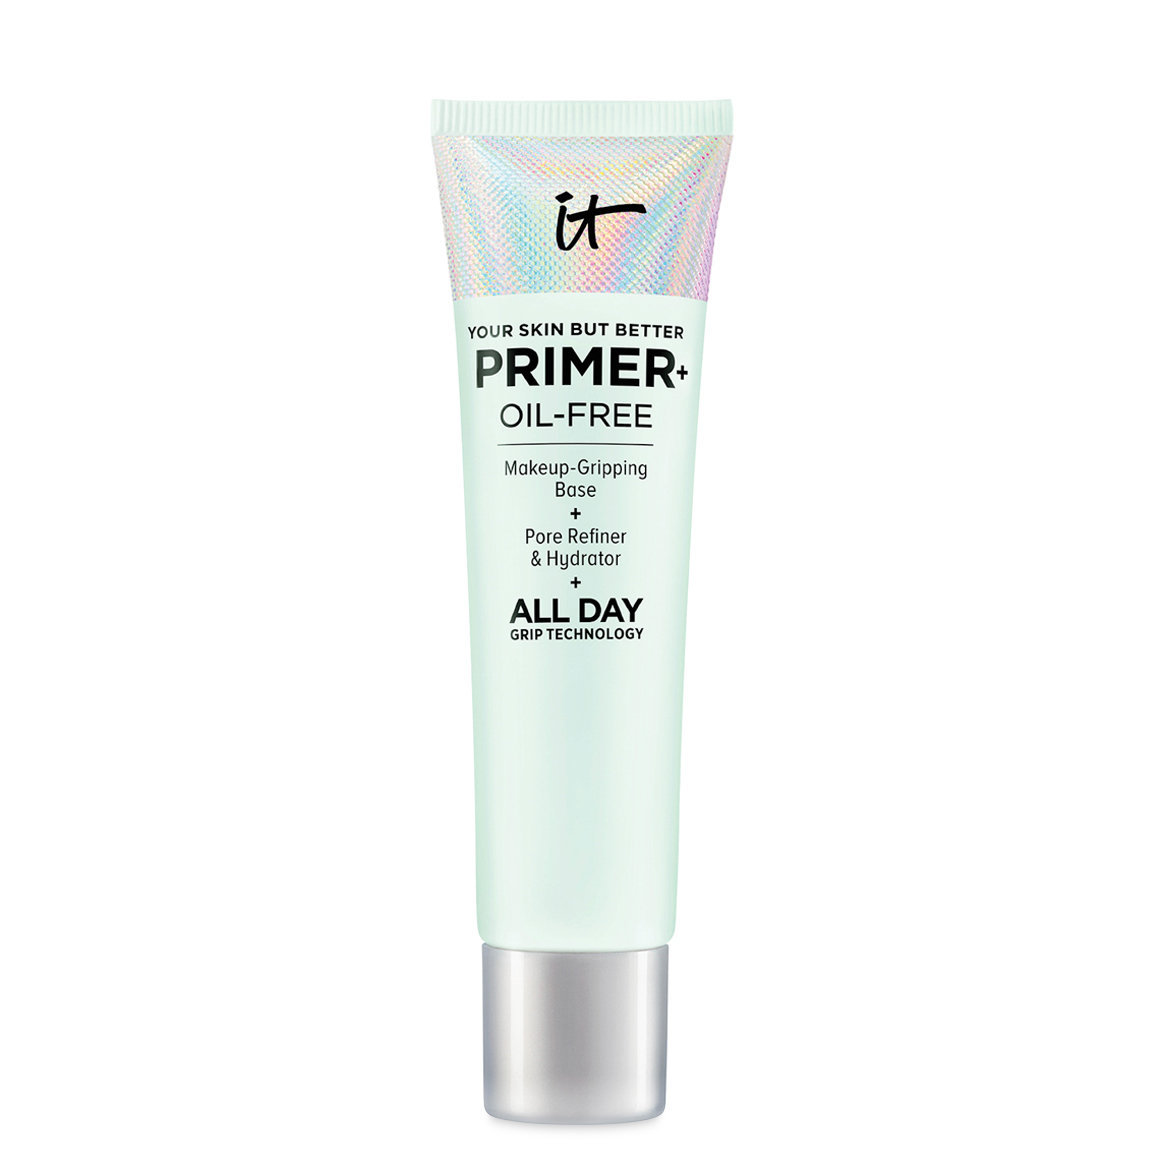 IT Cosmetics  Your Skin But Better Makeup Primer + Oil-Free alternative view 1 - product swatch.